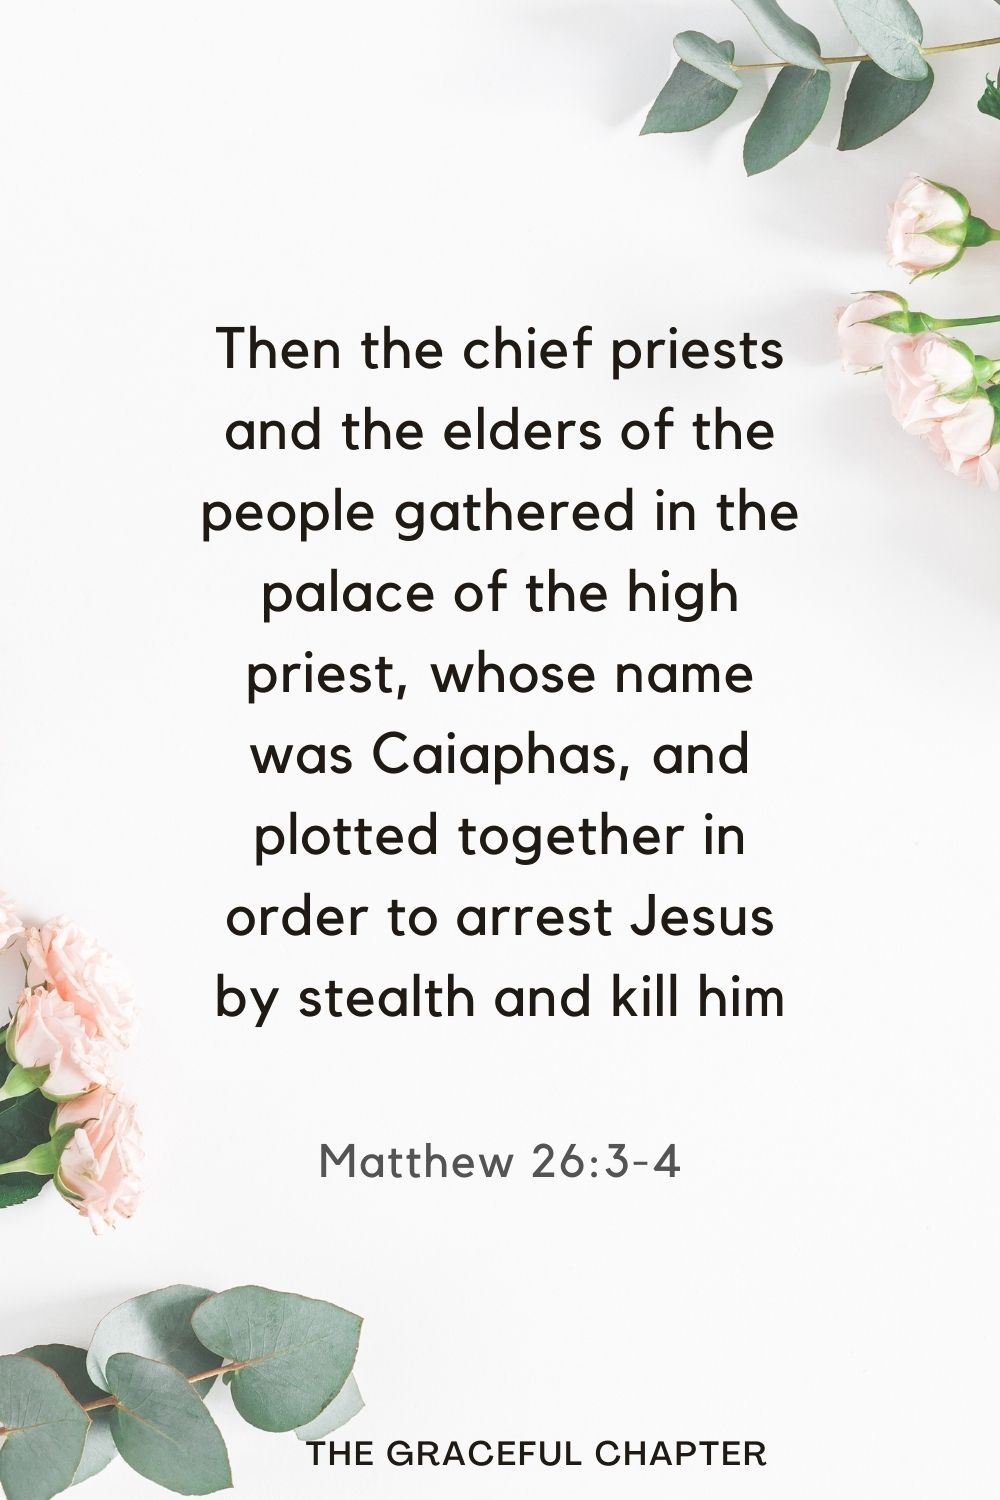 Then the chief priests and the elders of the people gathered in the palace of the high priest, whose name was Caiaphas, and plotted together in order to arrest Jesus by stealth and kill him. Matthew 26:3-4